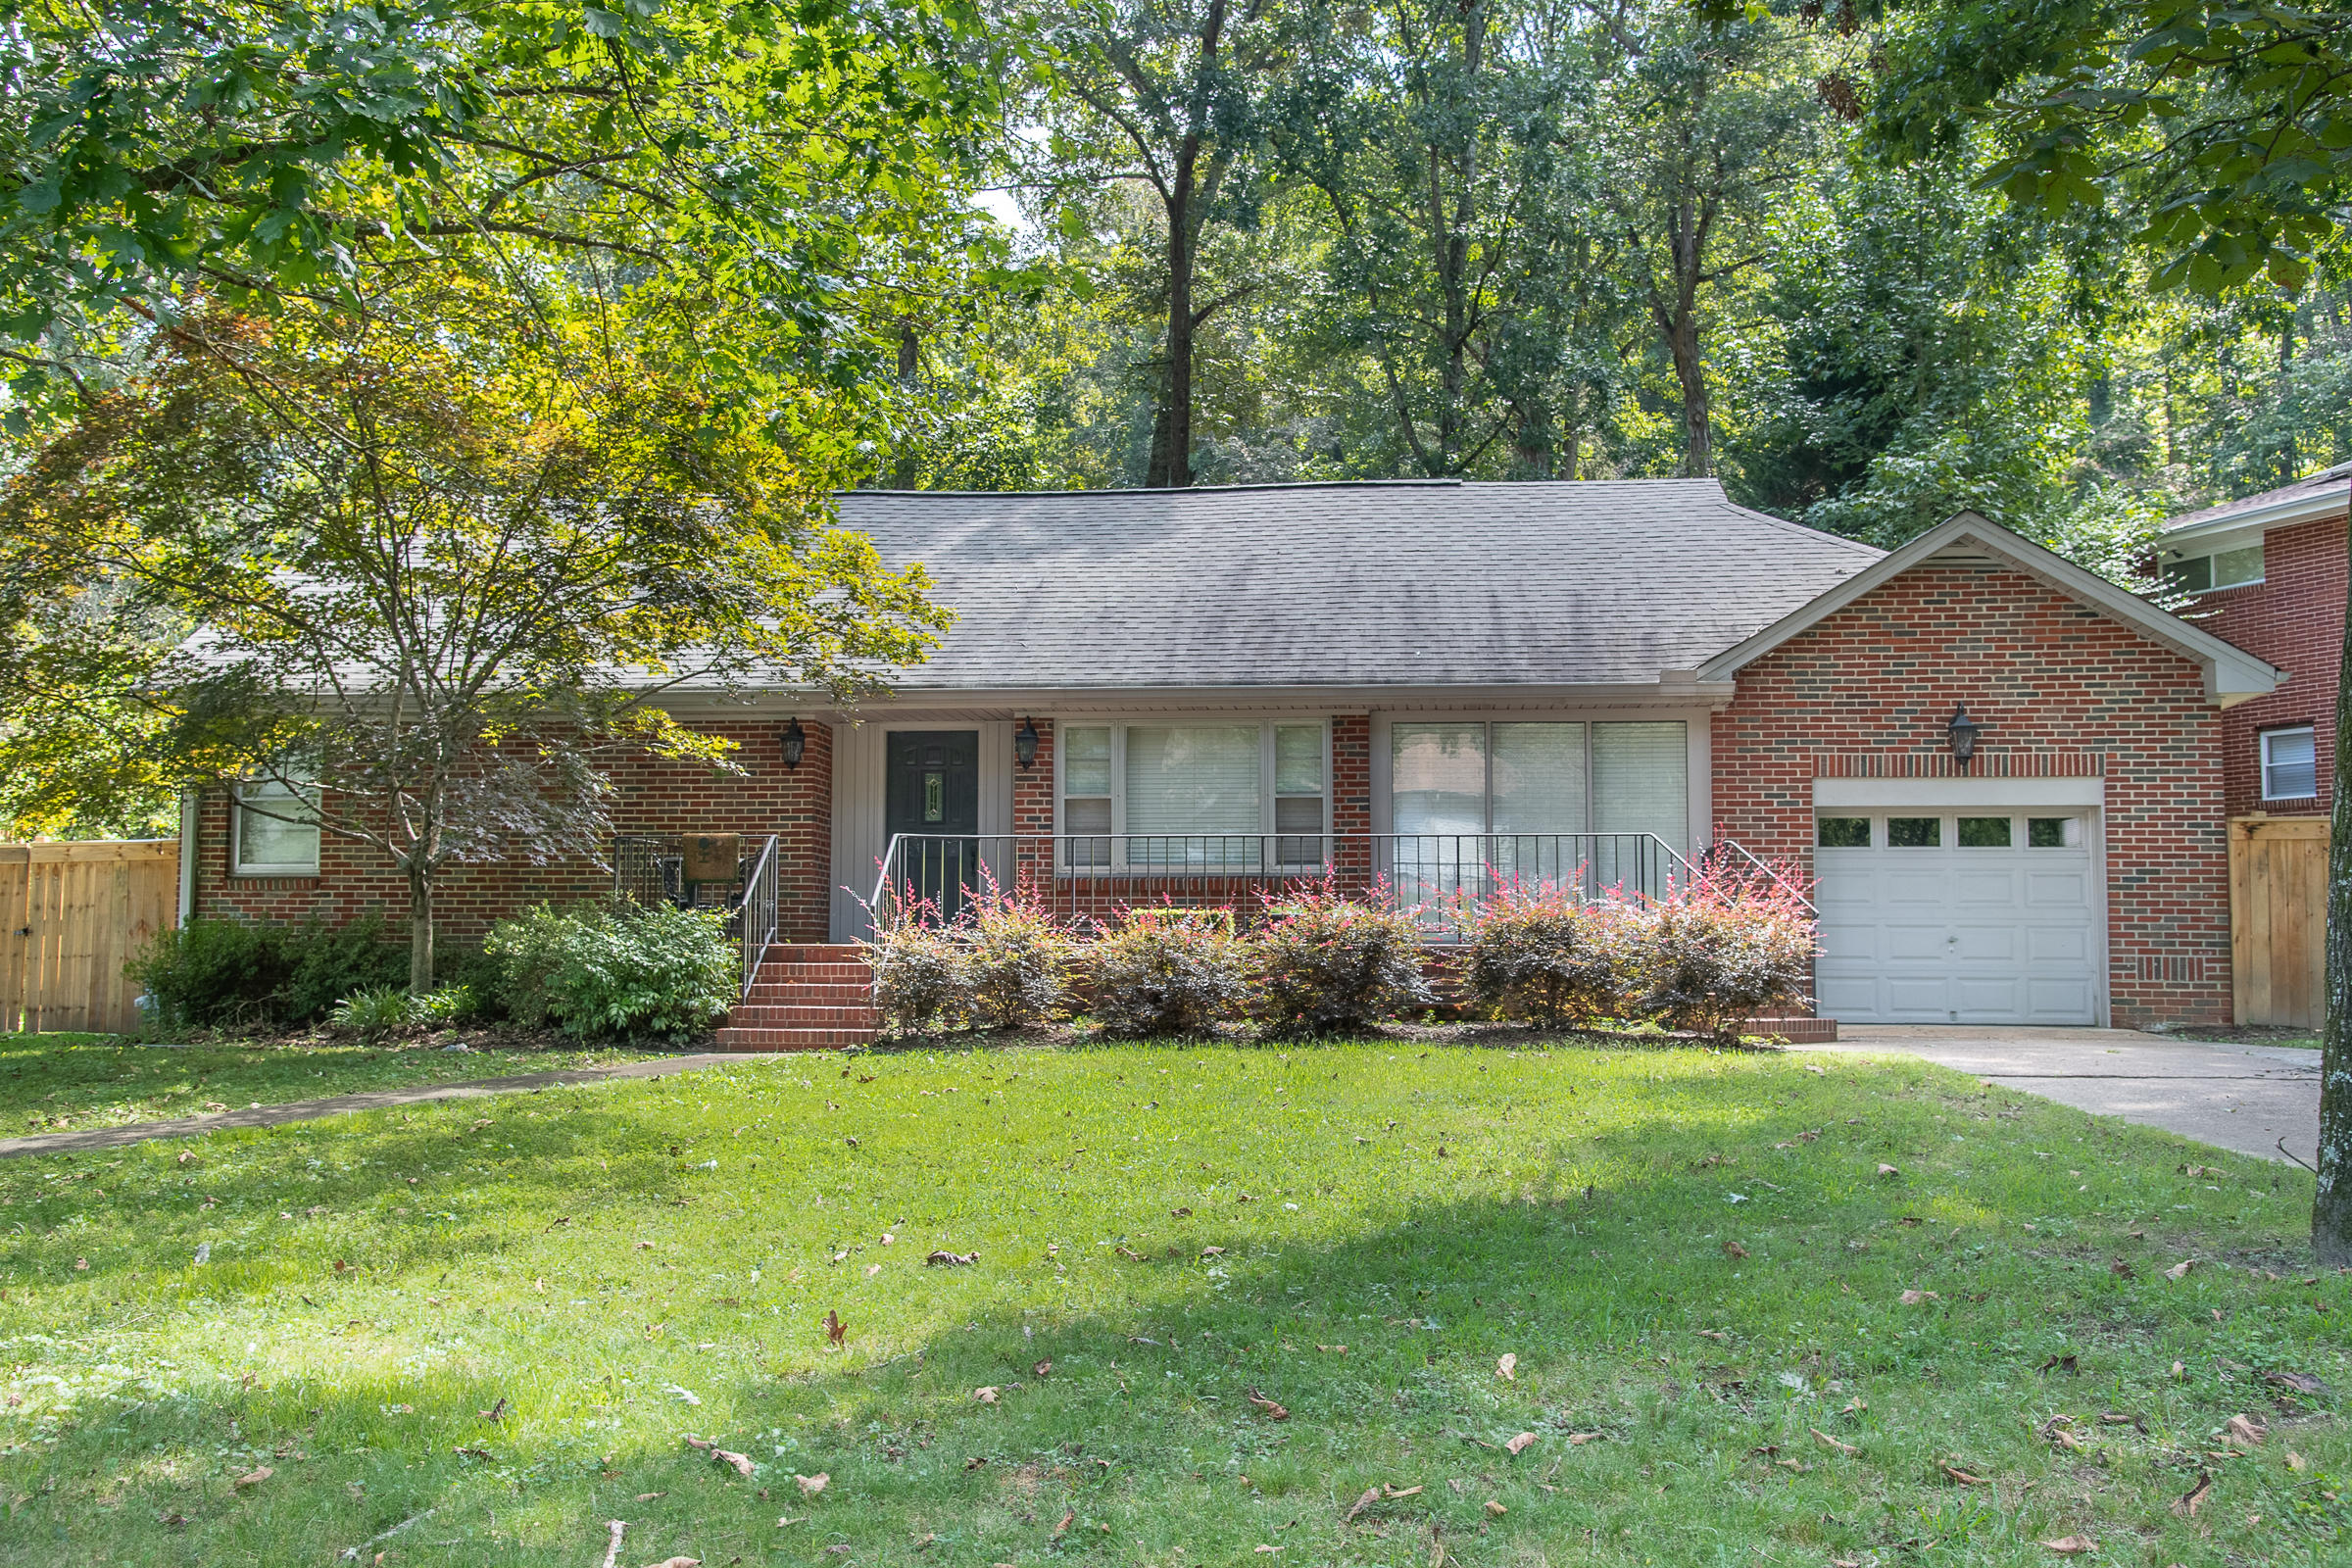 1935 Hixson Pike, Chattanooga, TN 37405